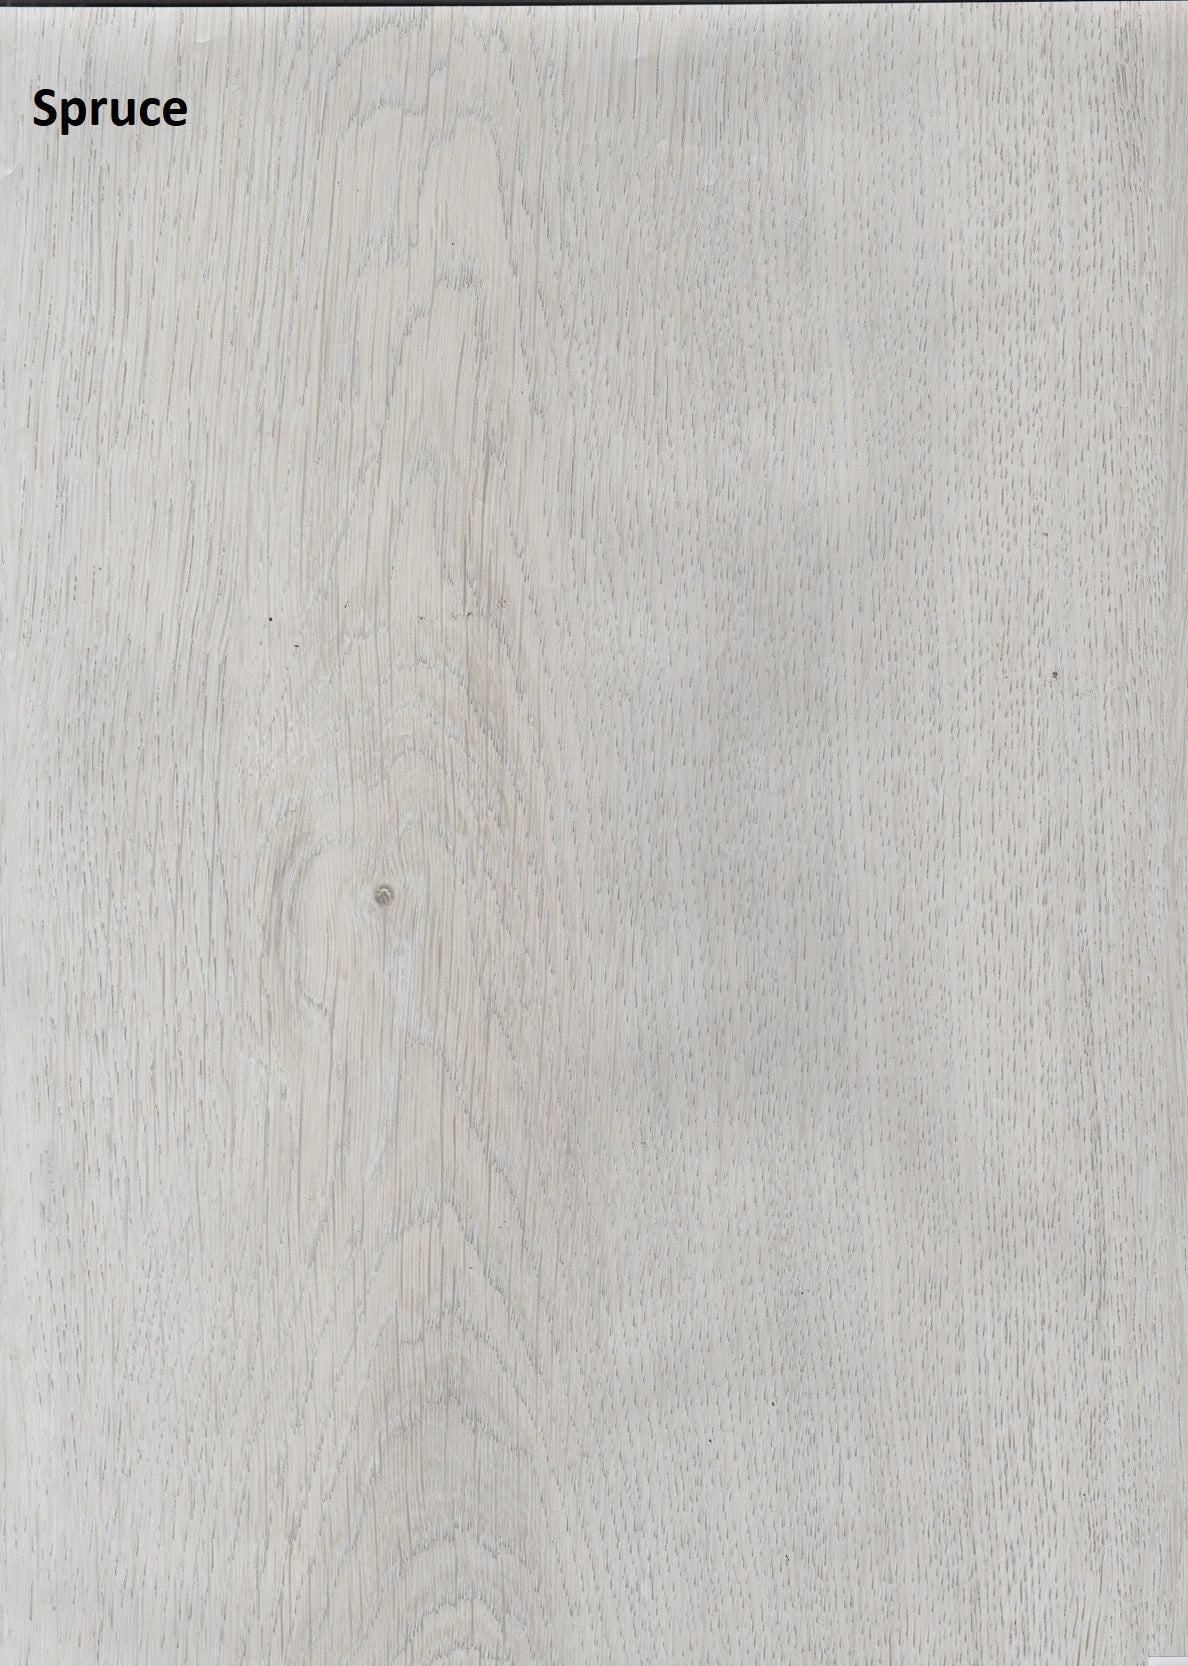 Spruce SPC Waterproof Patina Essentials $1.95psf Minimum Purchase 500sq ft.